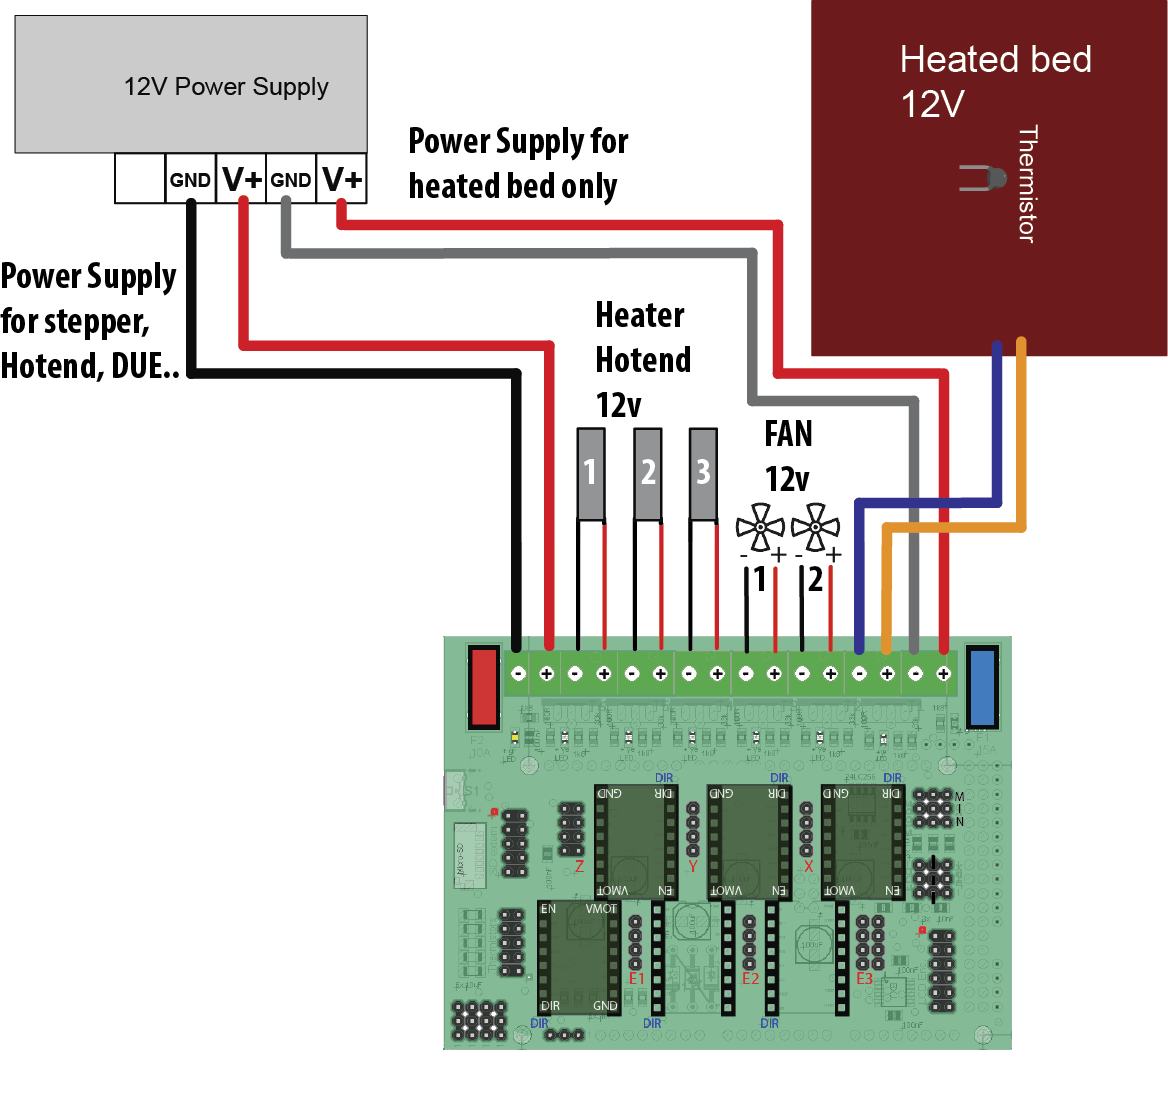 PSU (Power Supply Unit) and electrical good sizing - RADDS